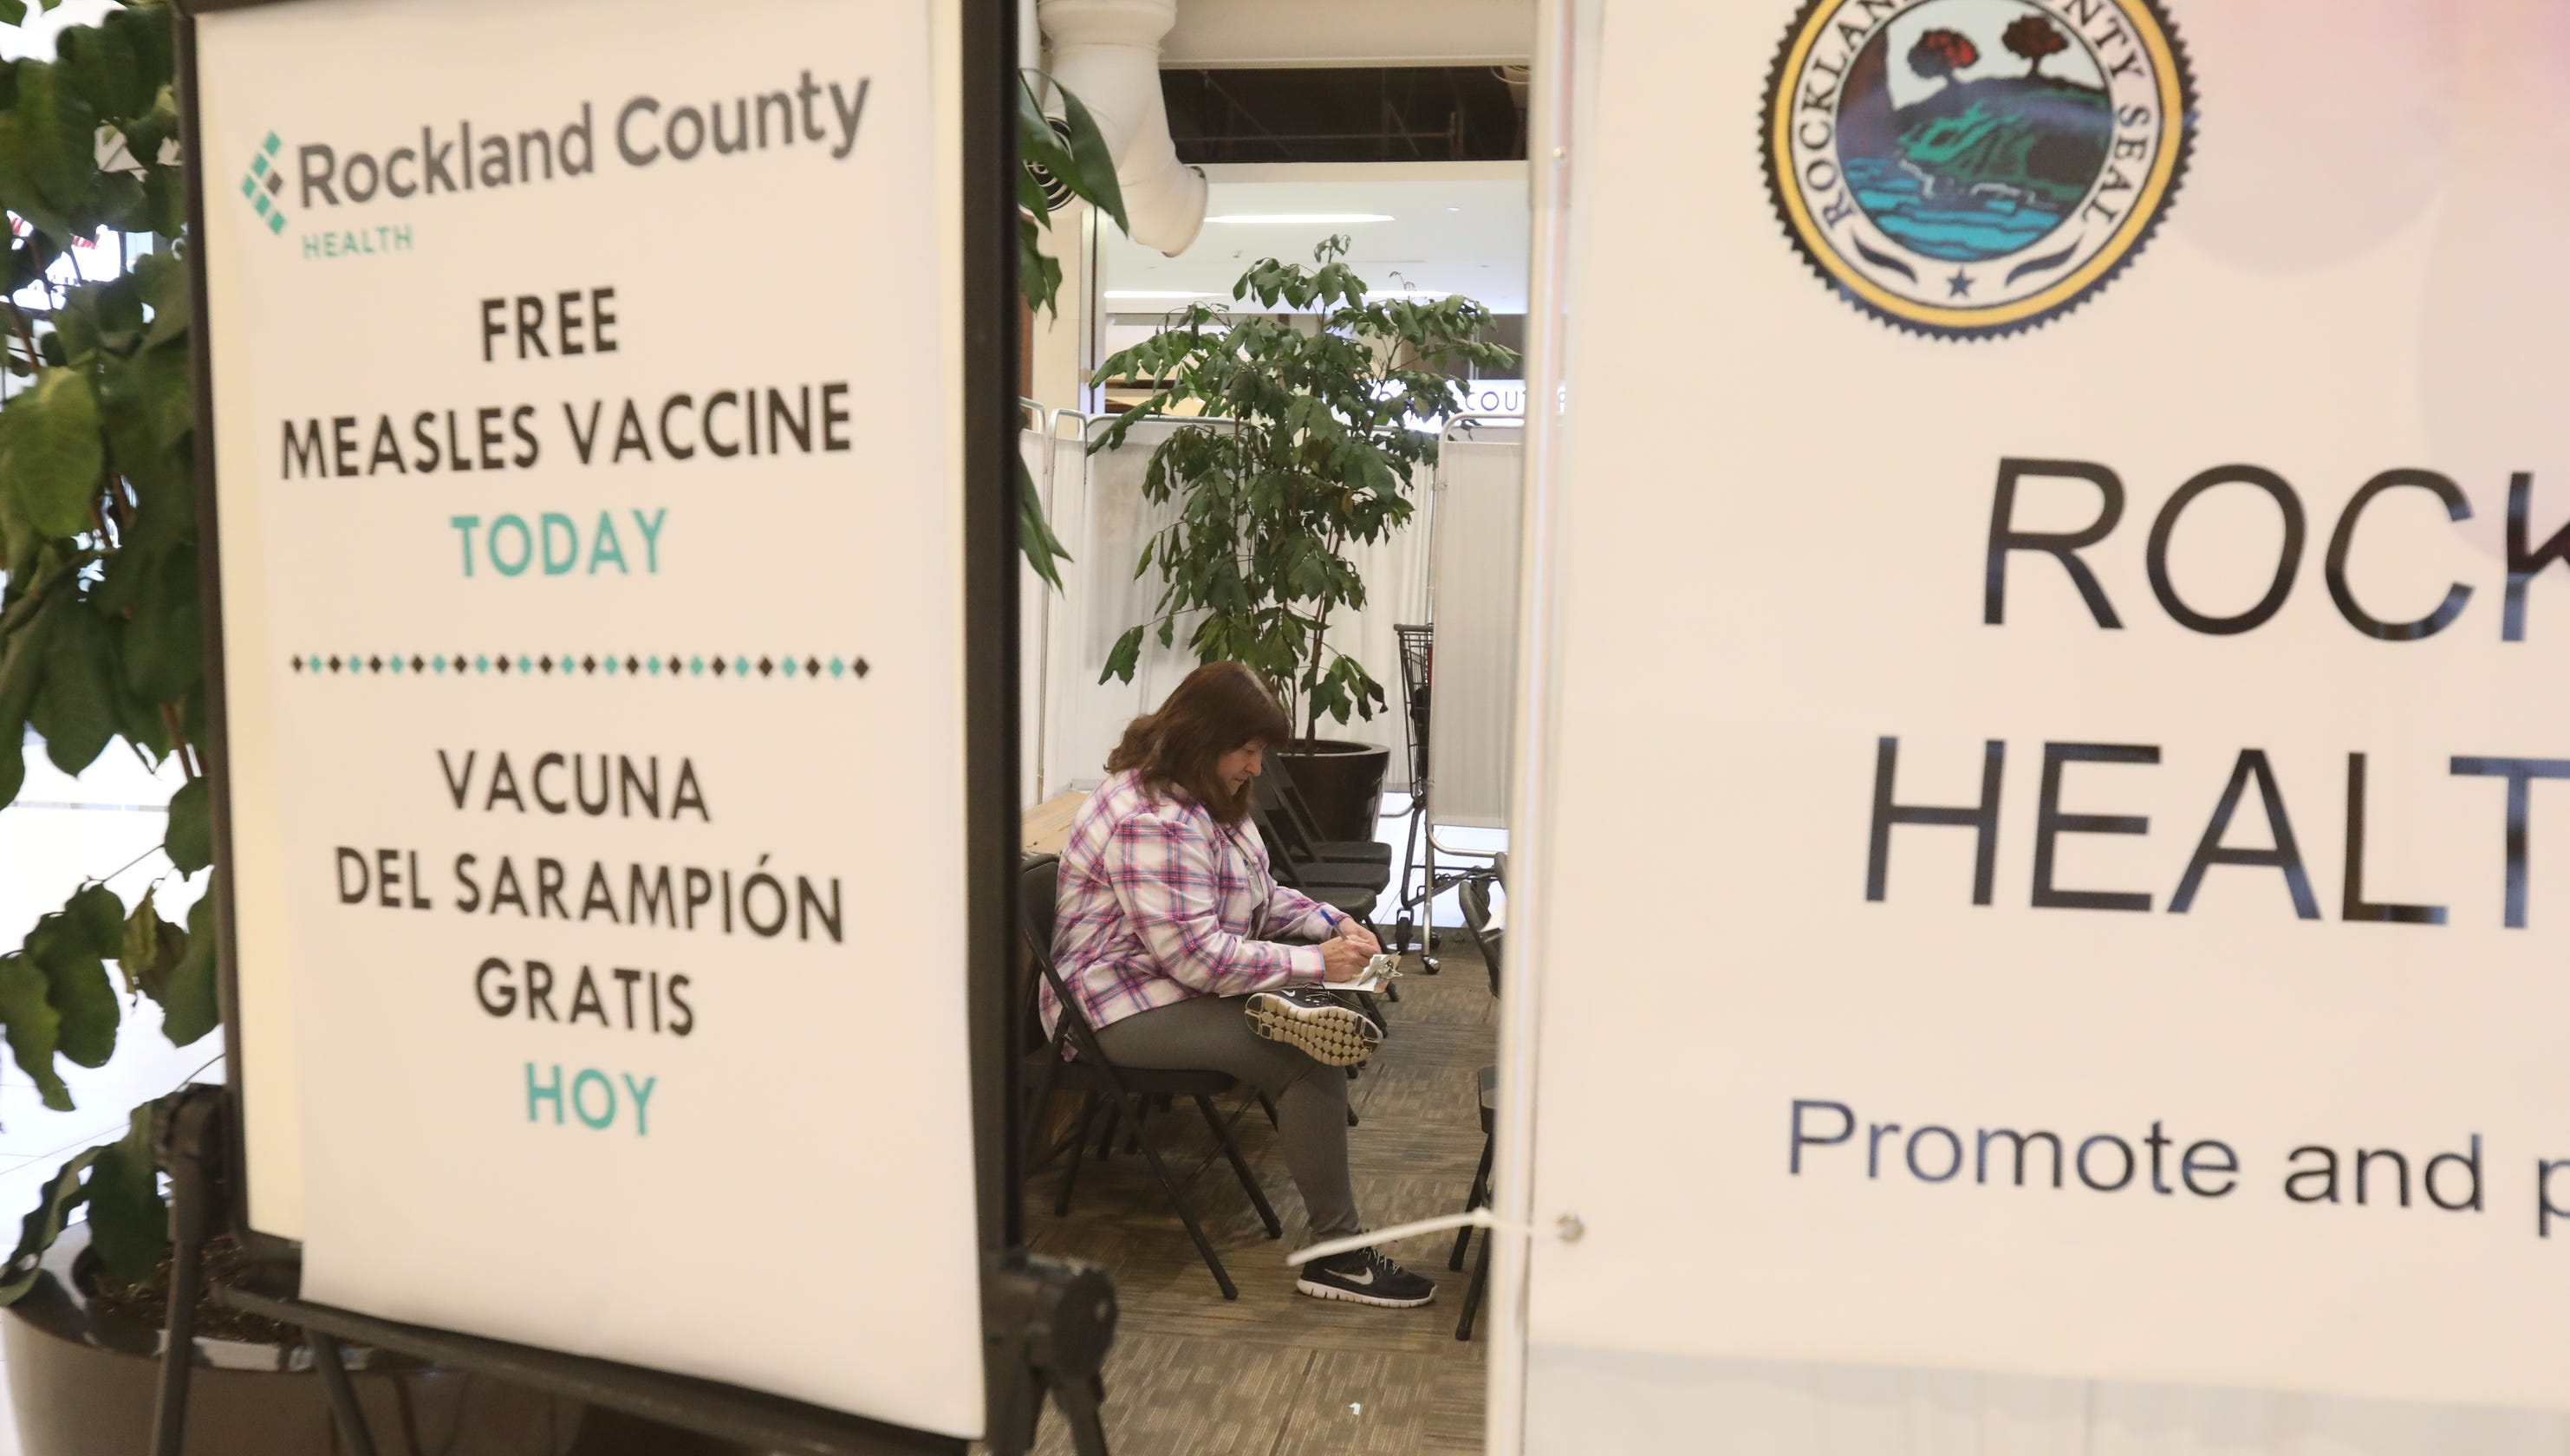 Vaccinations in New York: Lawmakers want to stop all